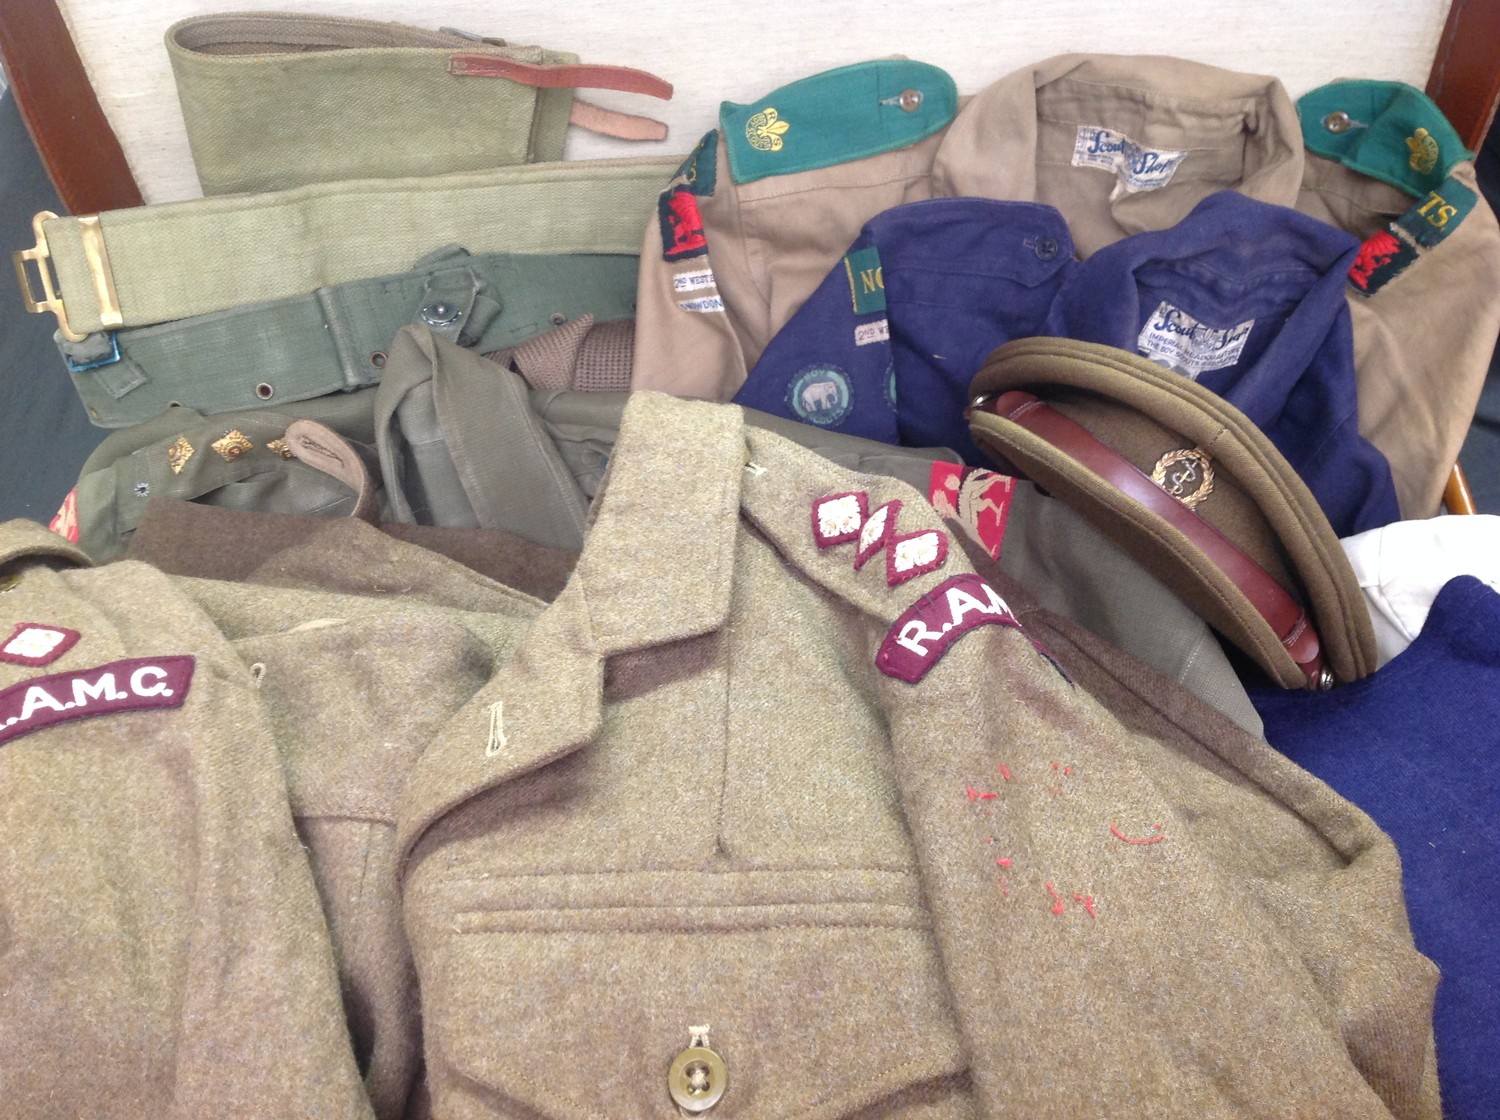 Post War British RAMC Officers uniform grouping to 453847 Captain J.A.K Wightman. This large and